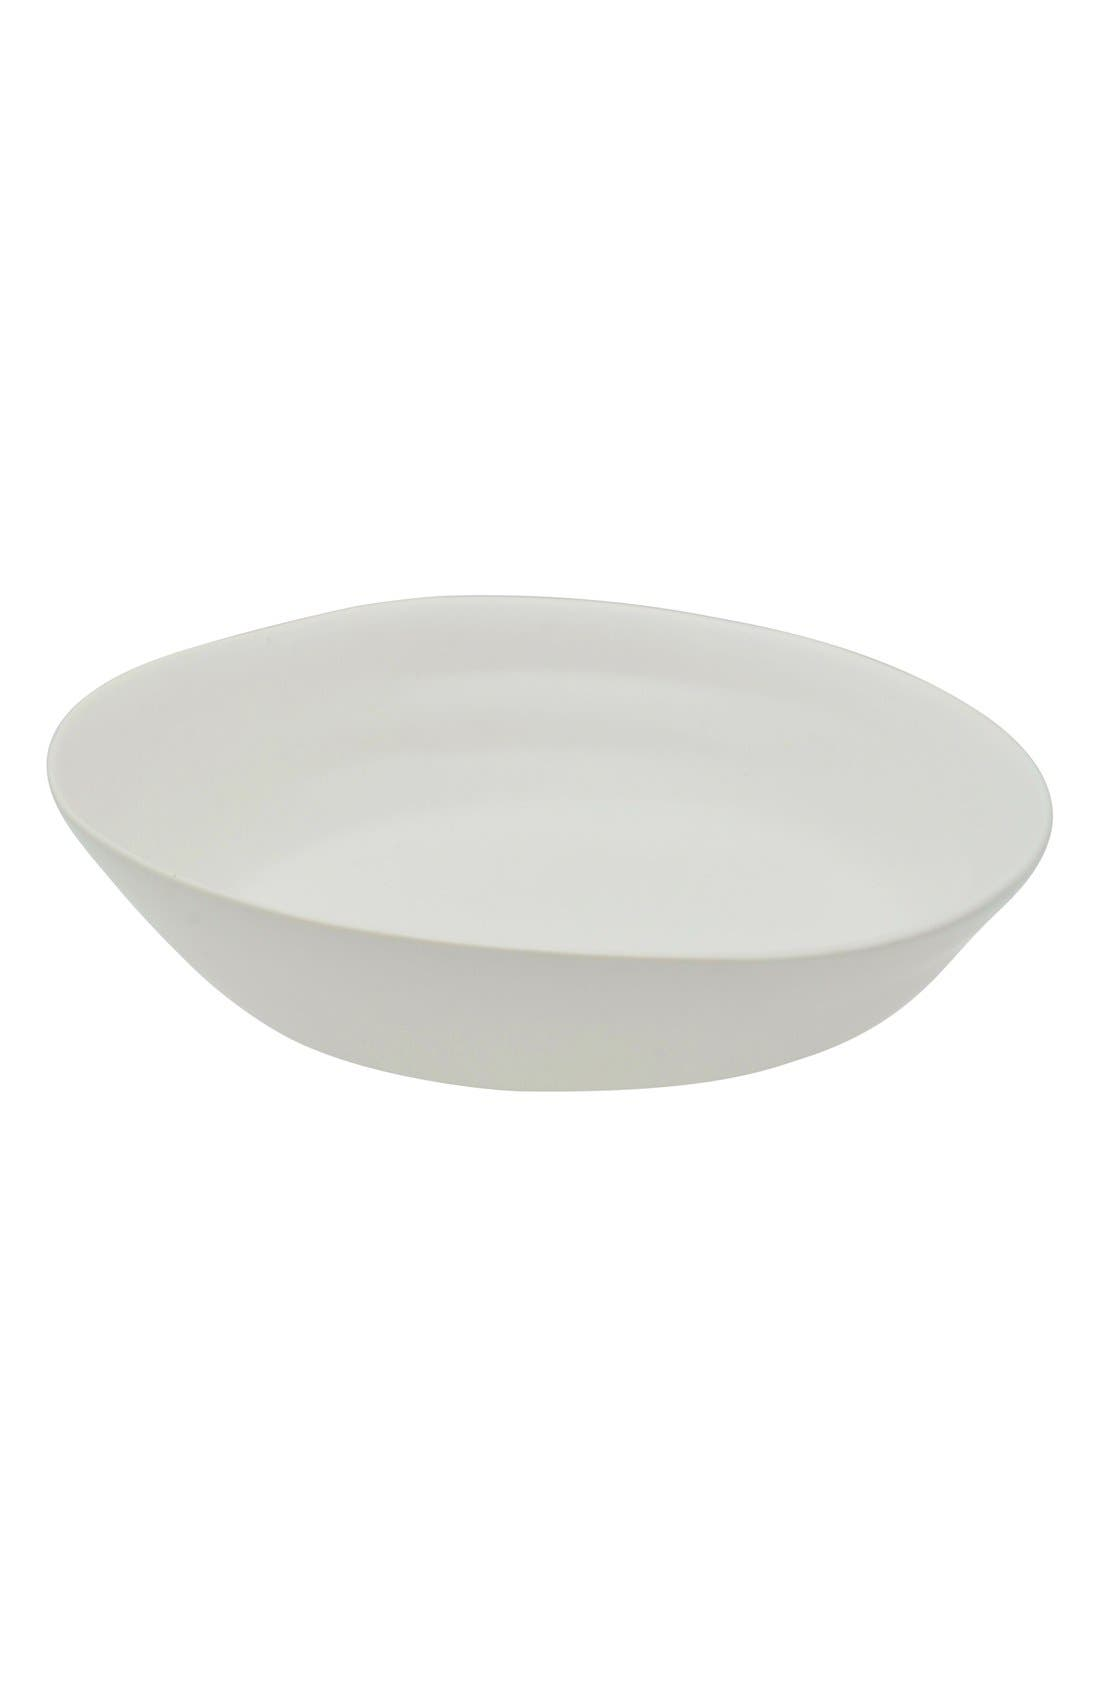 Alternate Image 1 Selected - 10 Strawberry Street 'Ripple' Small Porcelain Side Dishes (Set of 6)